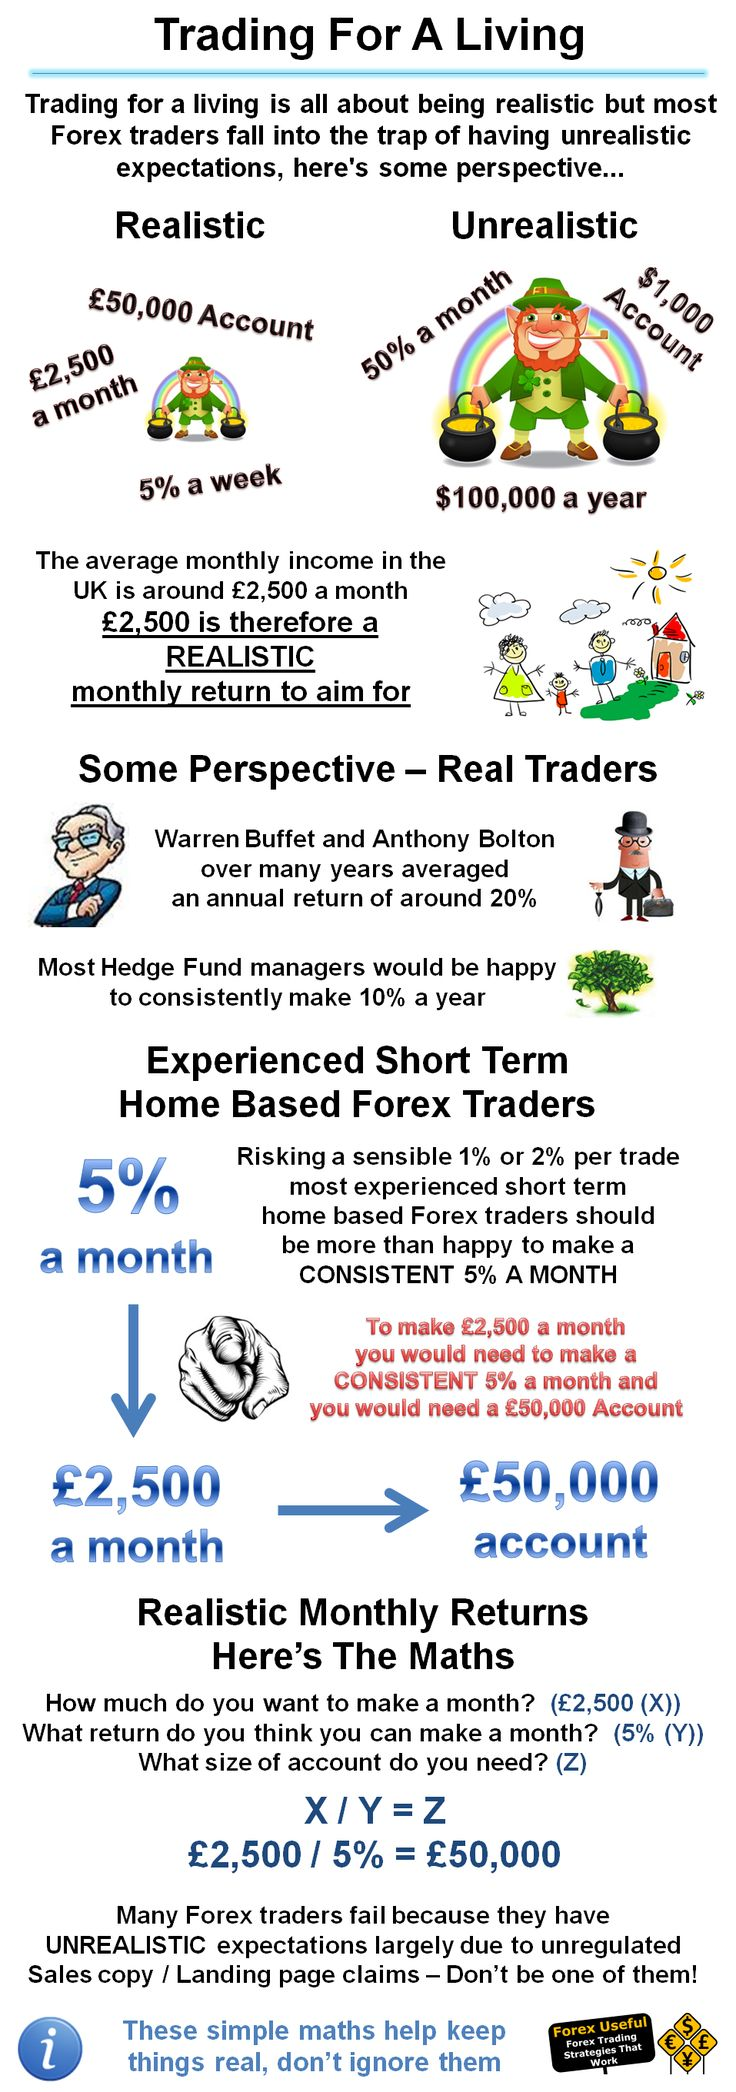 Trade forex for a living